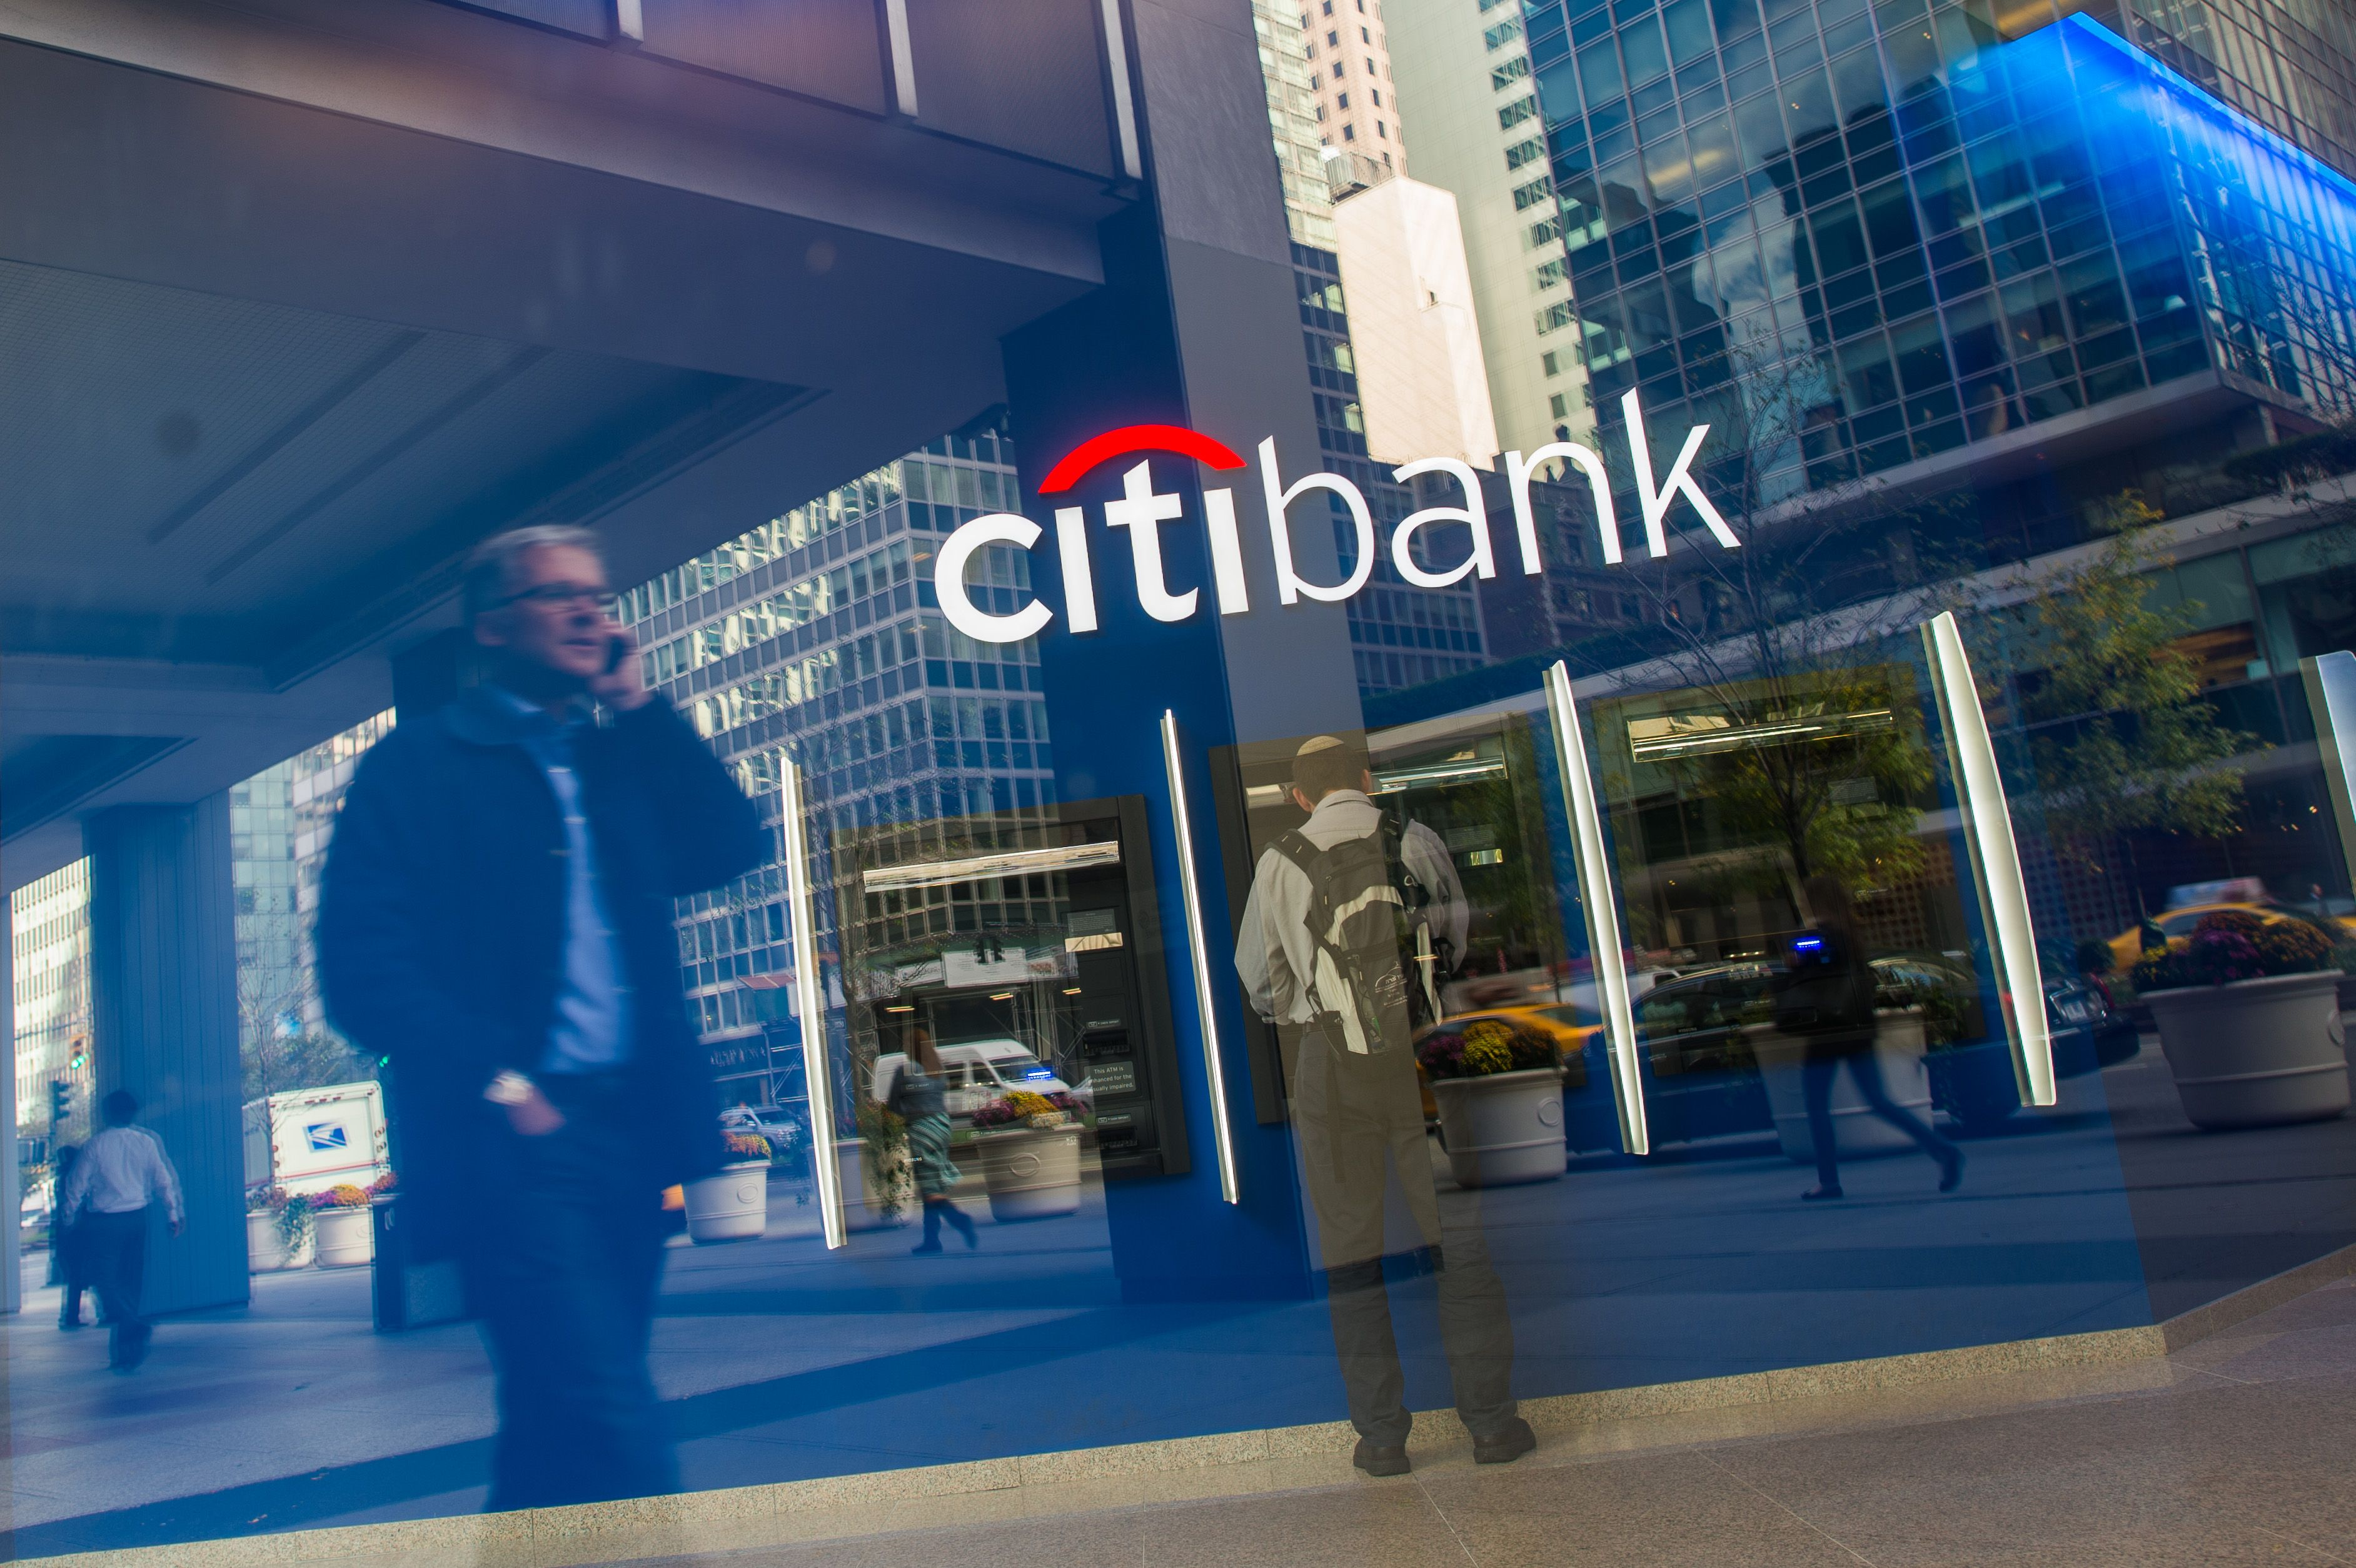 Citi banker used M&A deal to manipulate market, former FX trader